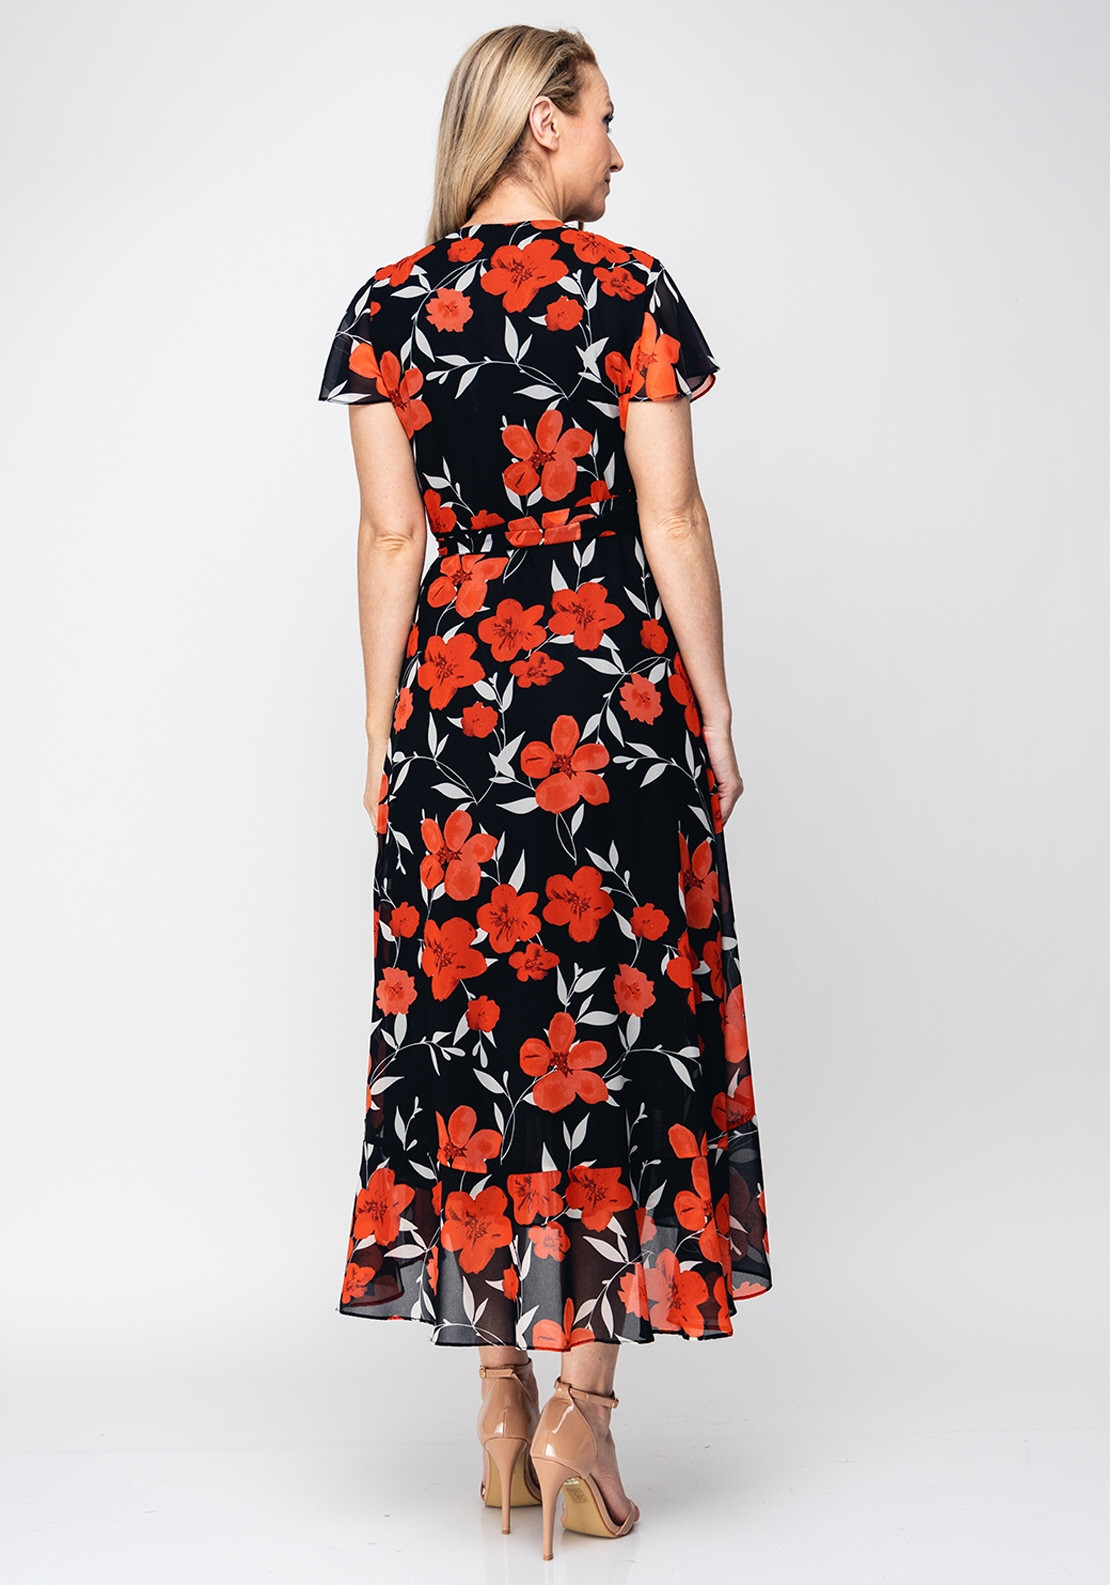 6a774d06b5c Joseph Ribkoff Floral Wrap Over Midi Dress